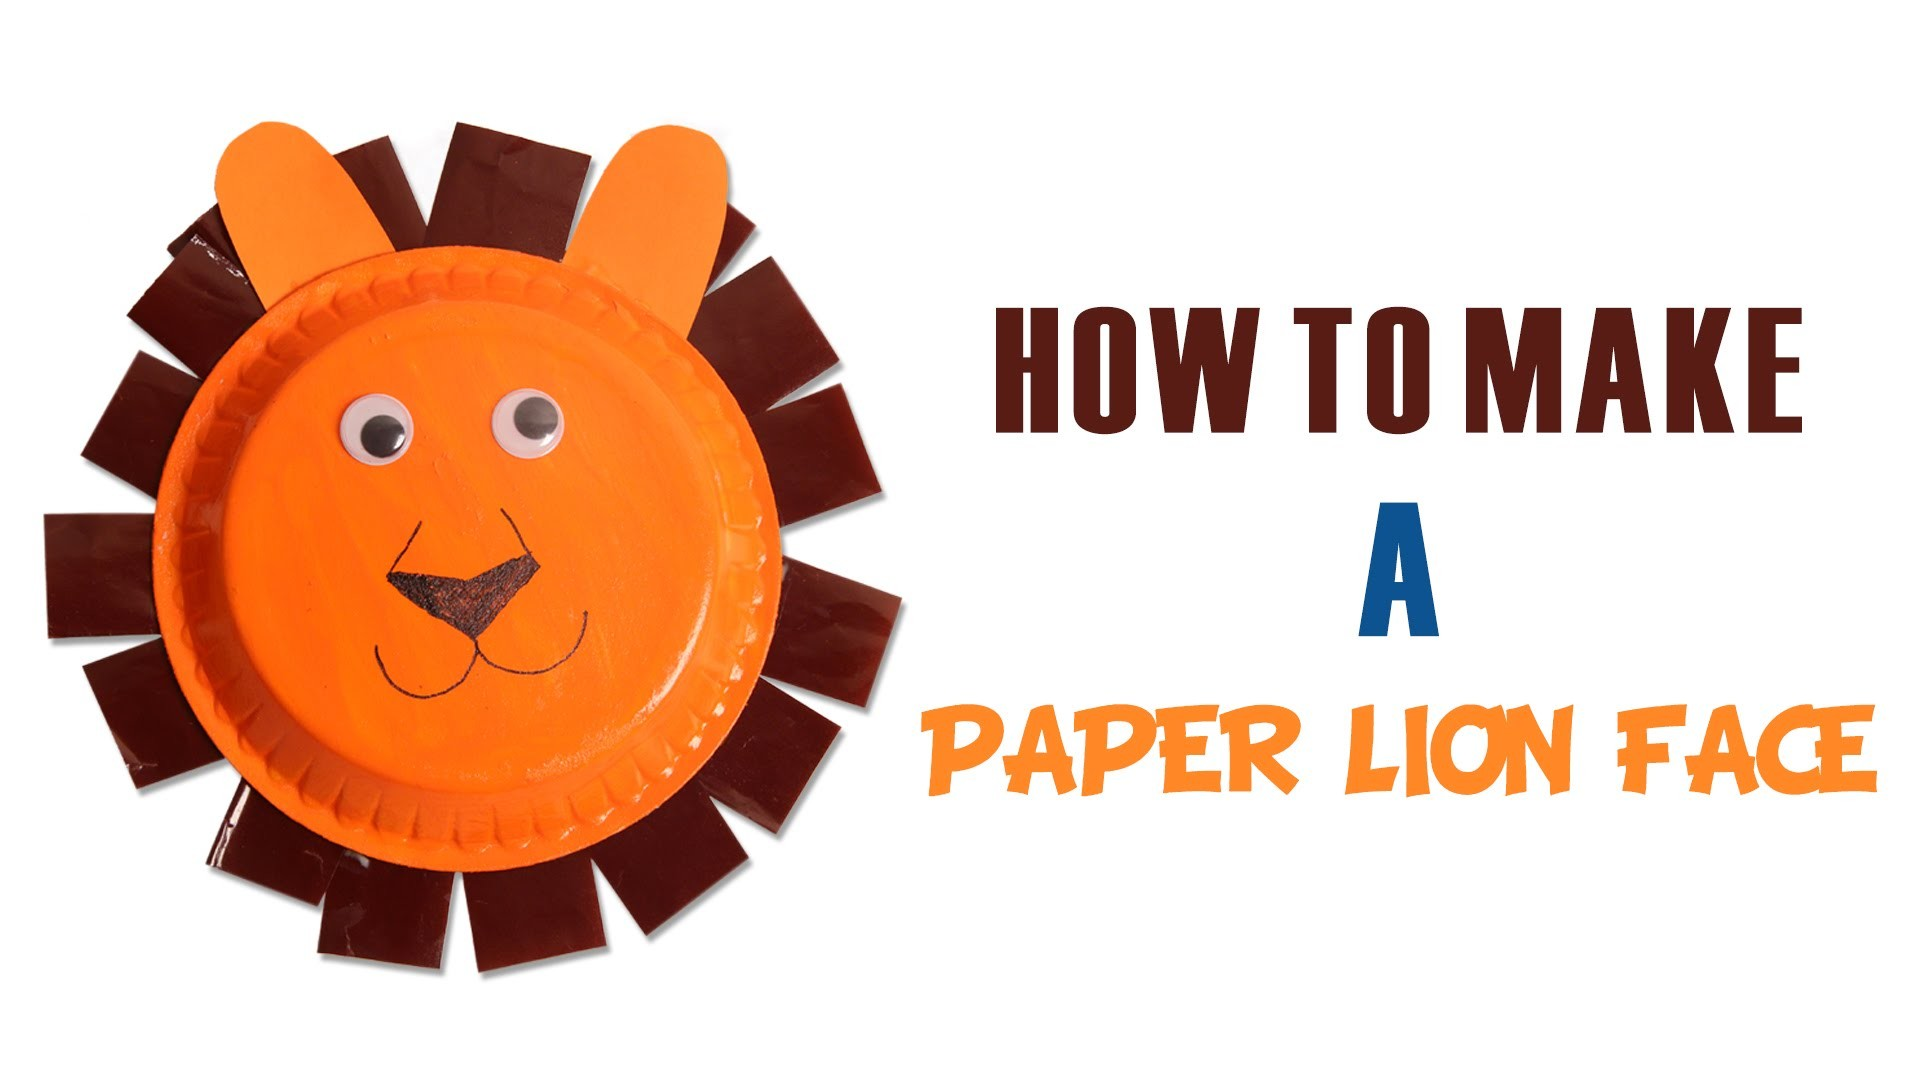 How To Make Paper Lion Face | Learn Art and Craft | DIY Decorated Paper Lion Face